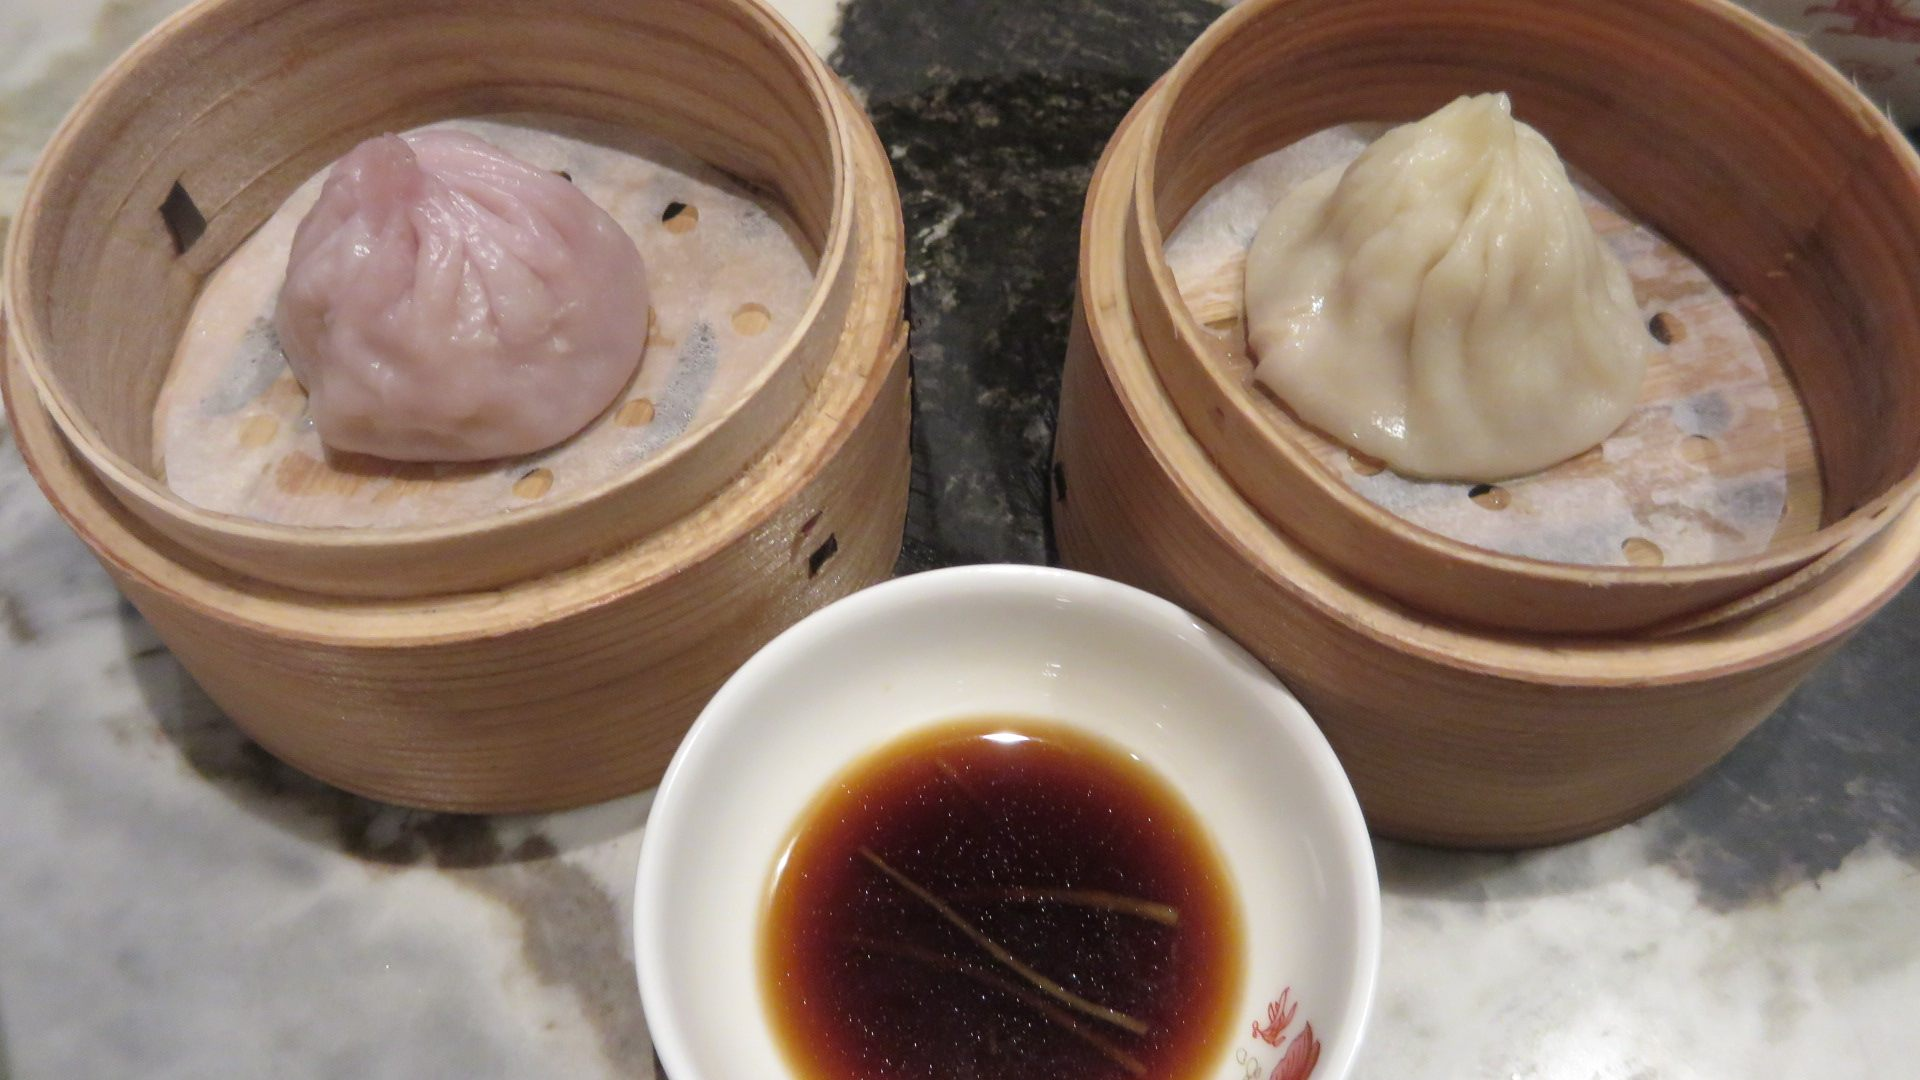 Two types of xiaolongbao steamed buns